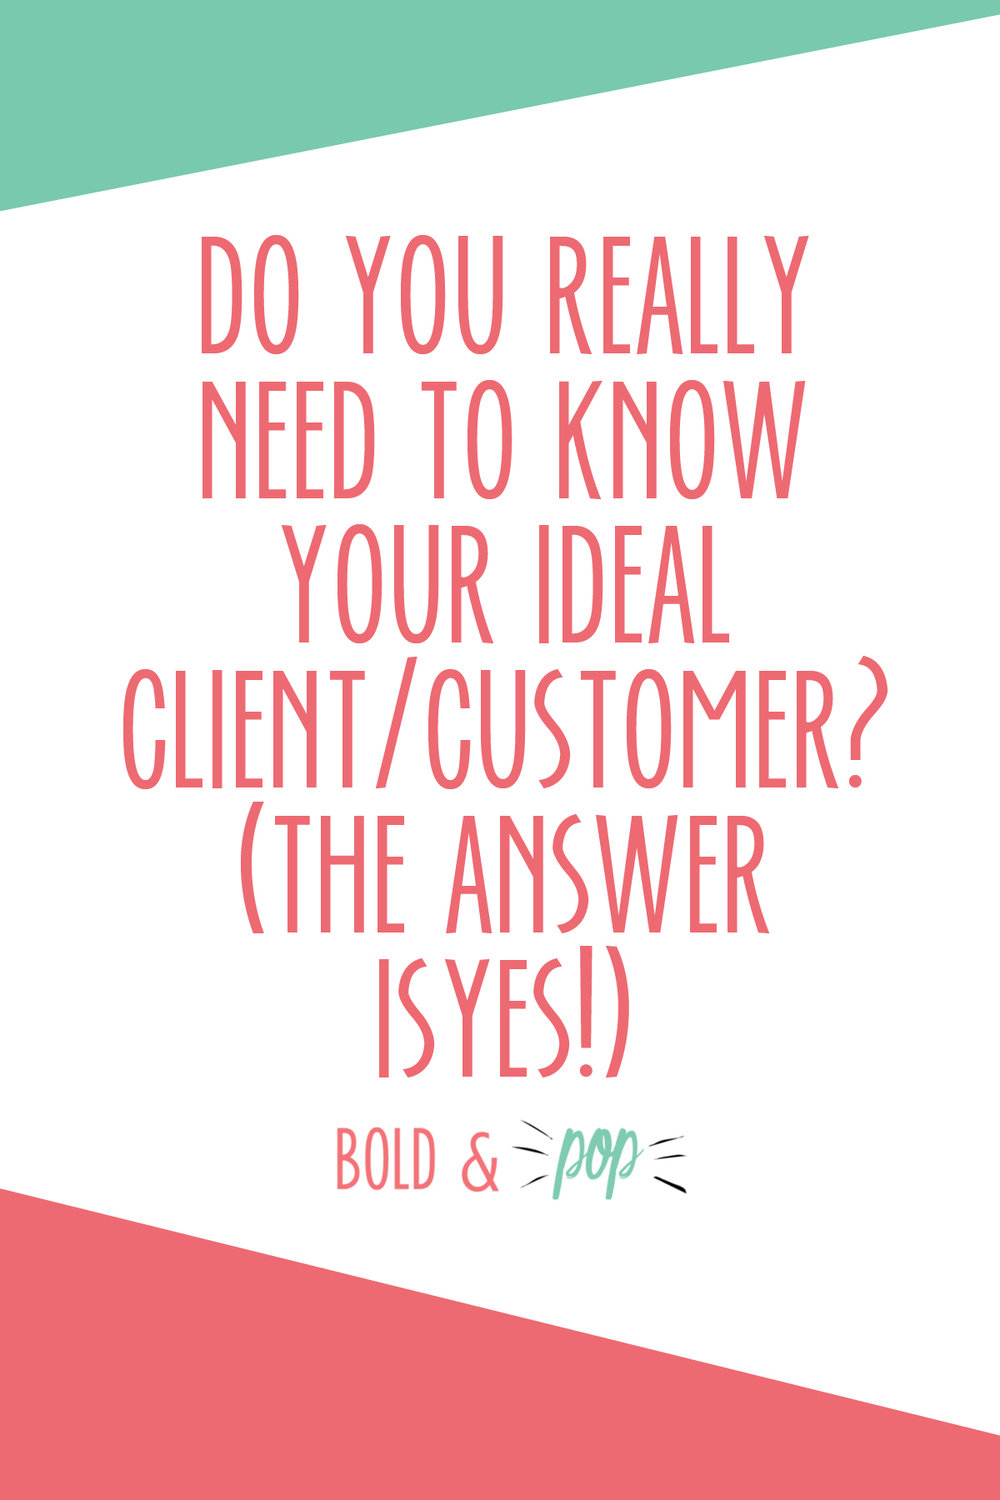 Bold & Pop :: Do You Really Need to Know Your Ideal Client/Customer? (The Answer is YES!)